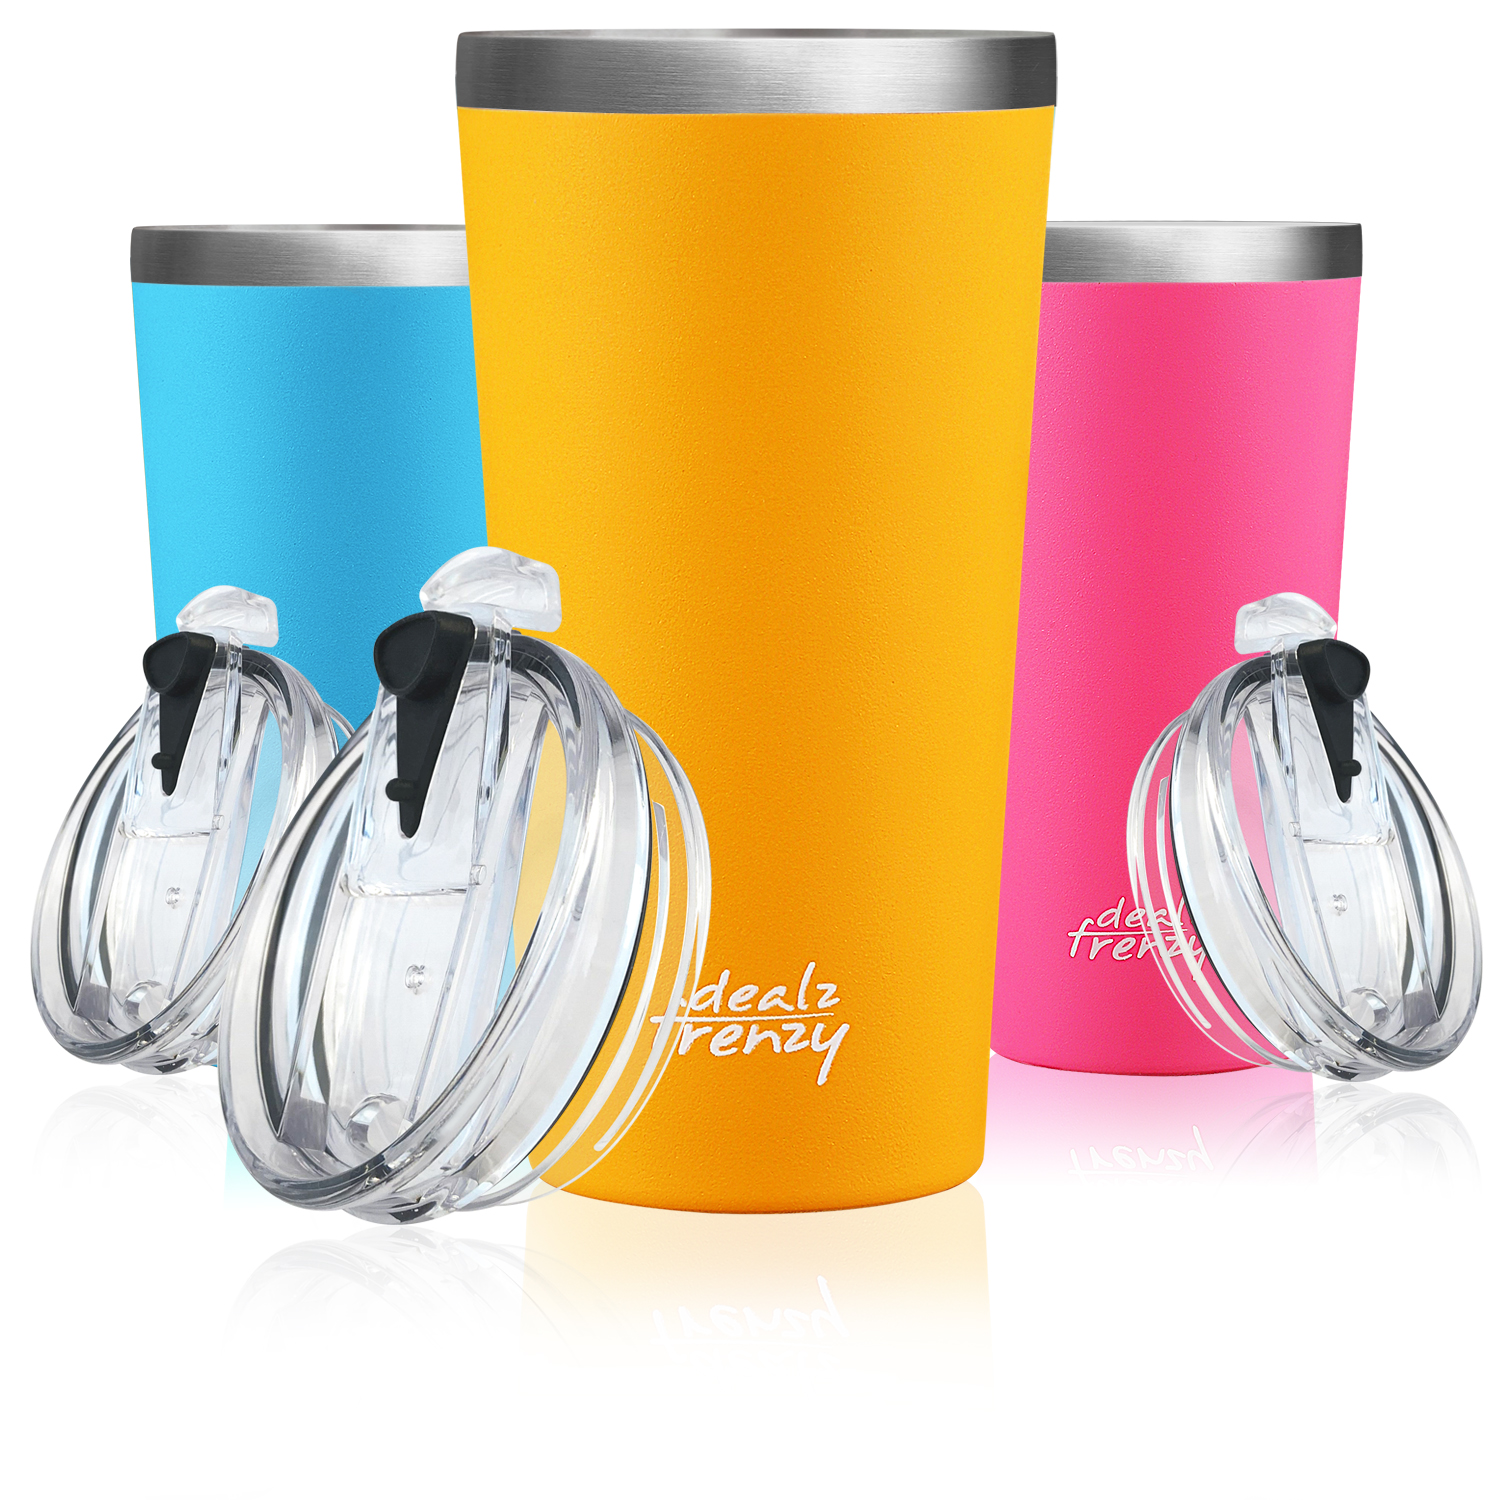 25dd7bddfc9 Double Wall Stainless Steel Wide Mouth Coffee Thermos Cups Holiday deals!